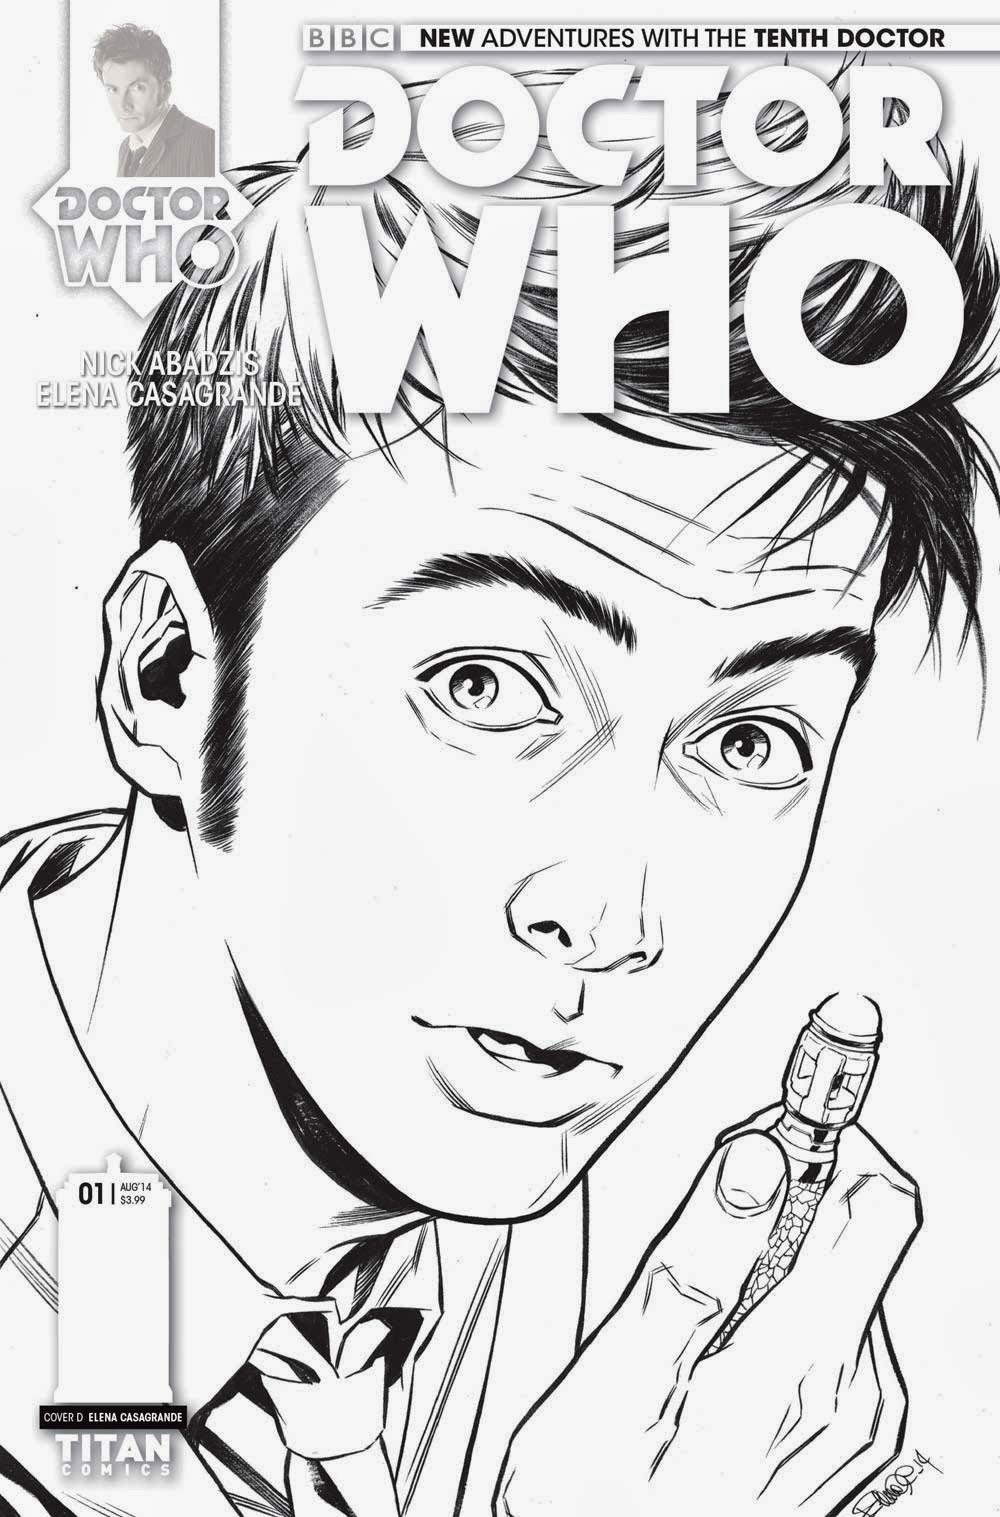 life doctor who u0026 combom 10th and 11th doctor comic full details